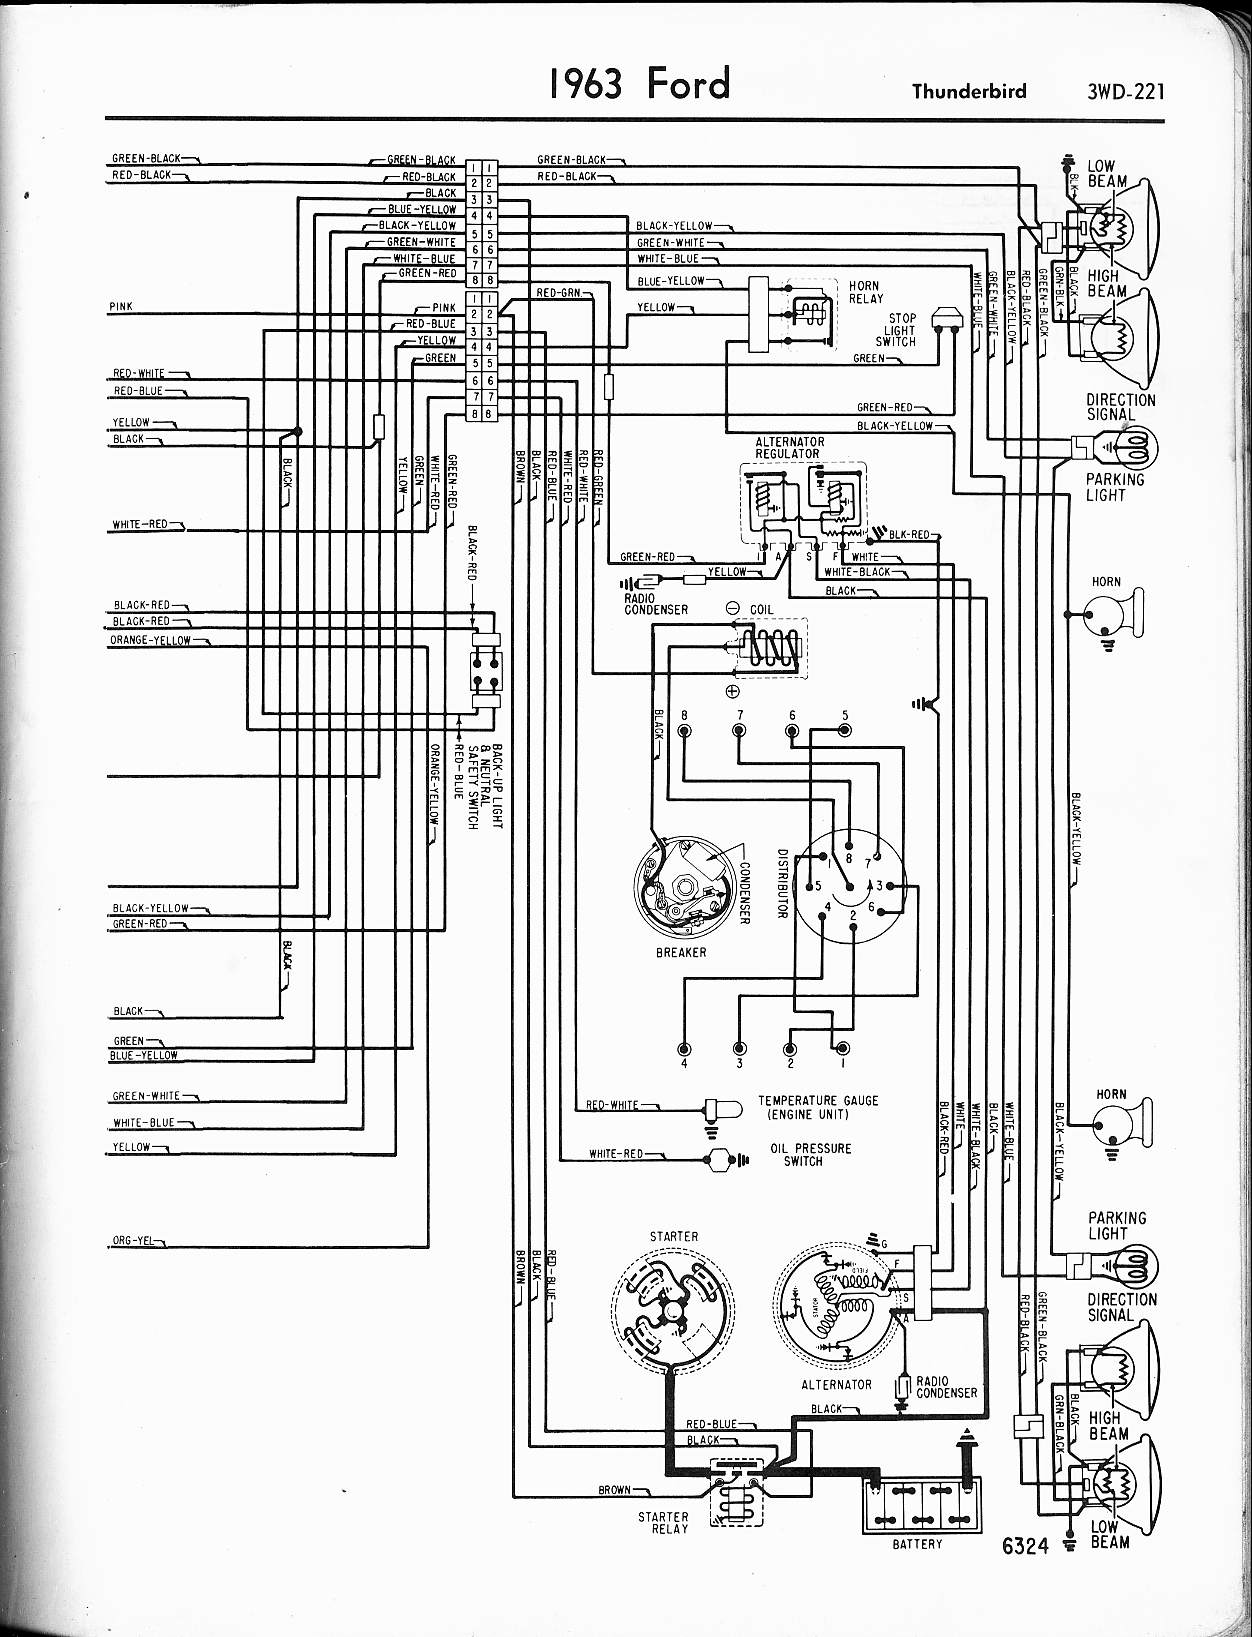 1969 ford fairlane wiring diagram ford fairlane wiring diagram